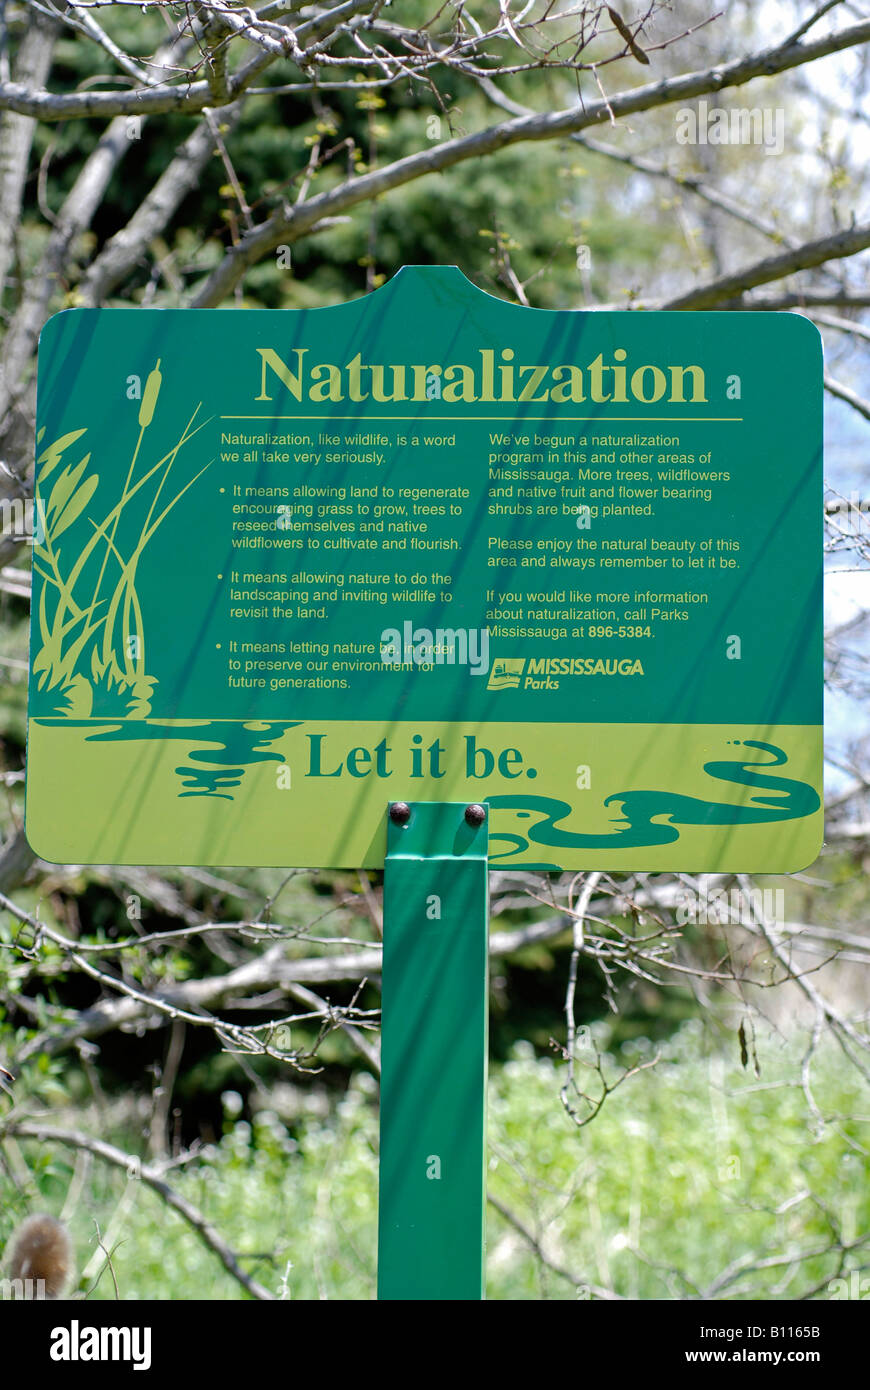 Naturalization Project in Mississauga Sign - Stock Image